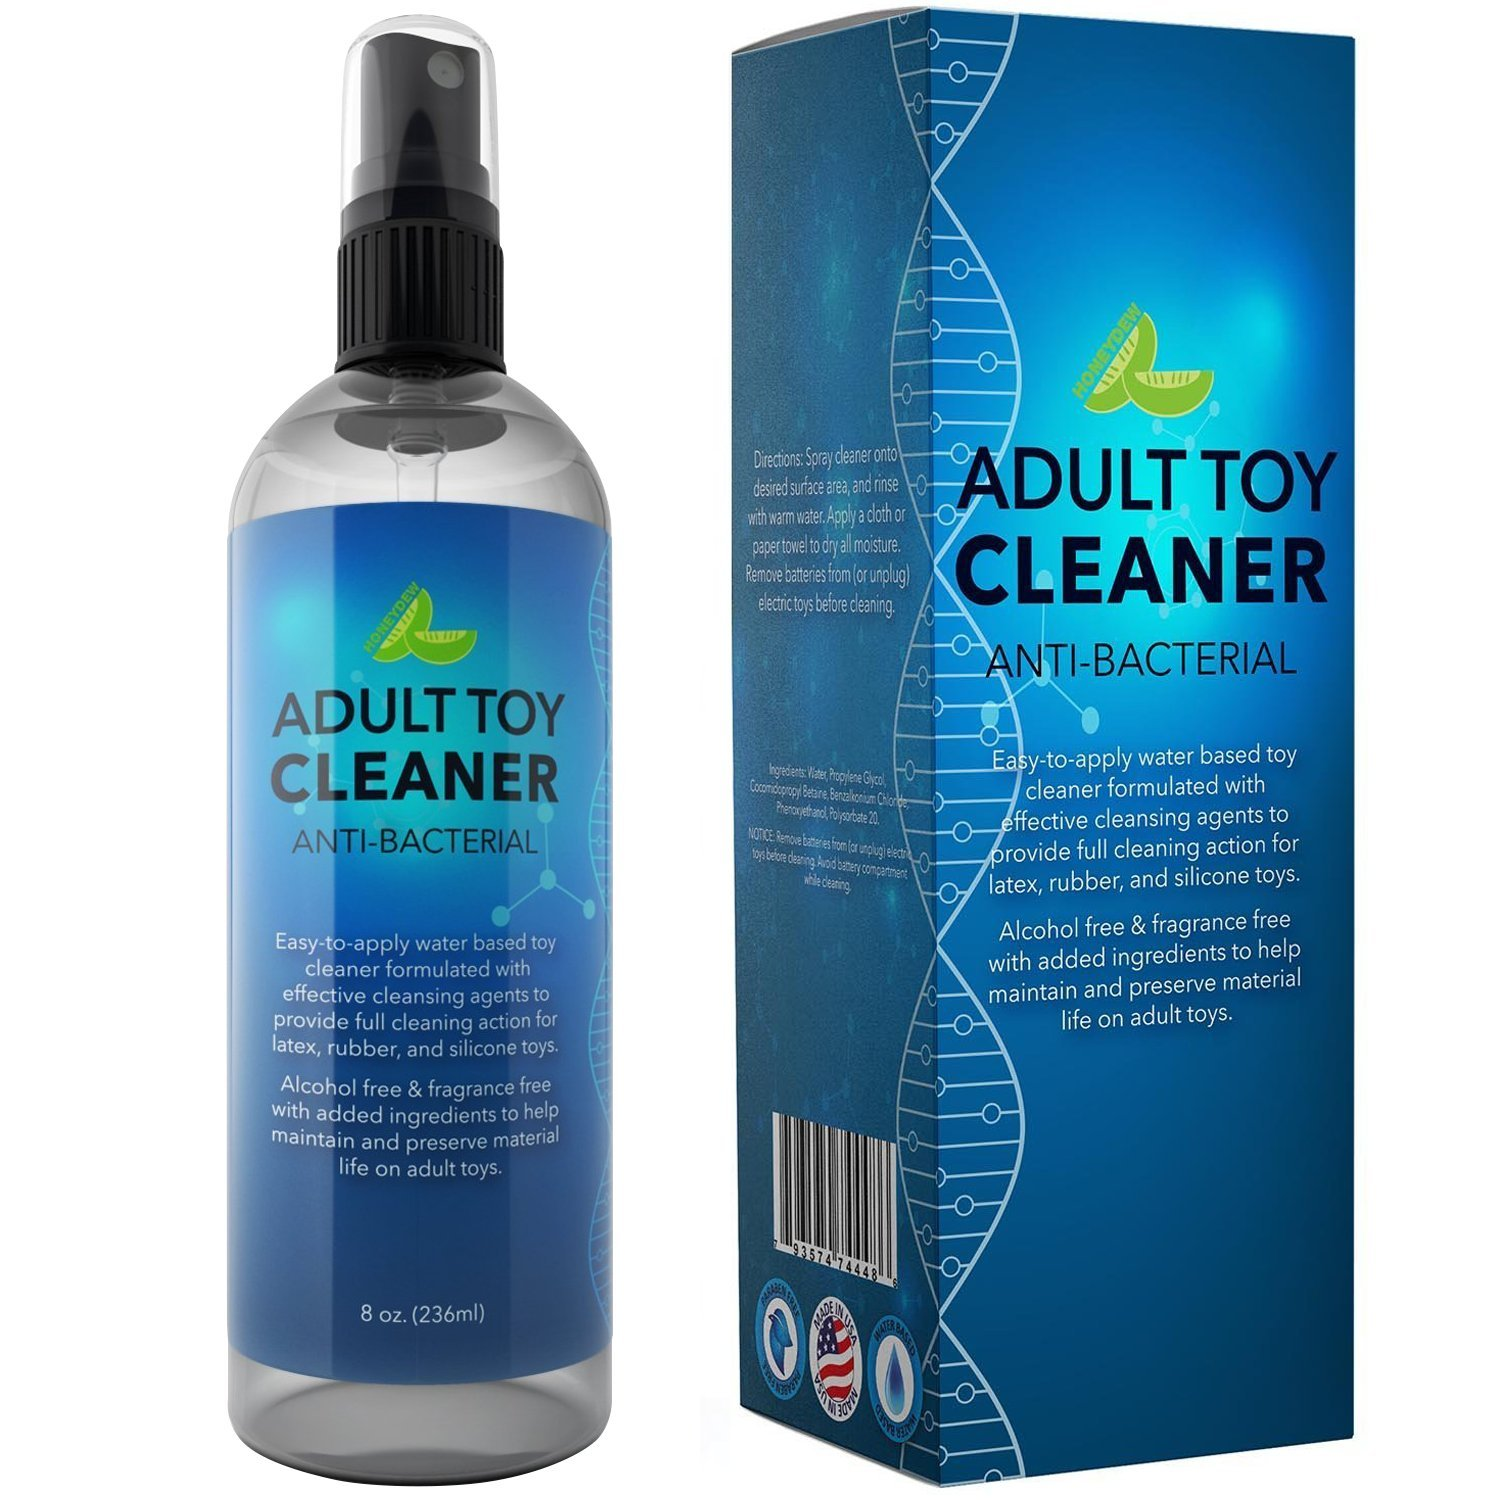 Antibacterial Toy Cleaner Spray Water Based Hypoallergenic Antimicrobial Multi Surface Disinfectant for Toys No Alcohol Sanitizer Cruelty Free Cleanser to Clean and Refresh Personal Care Products